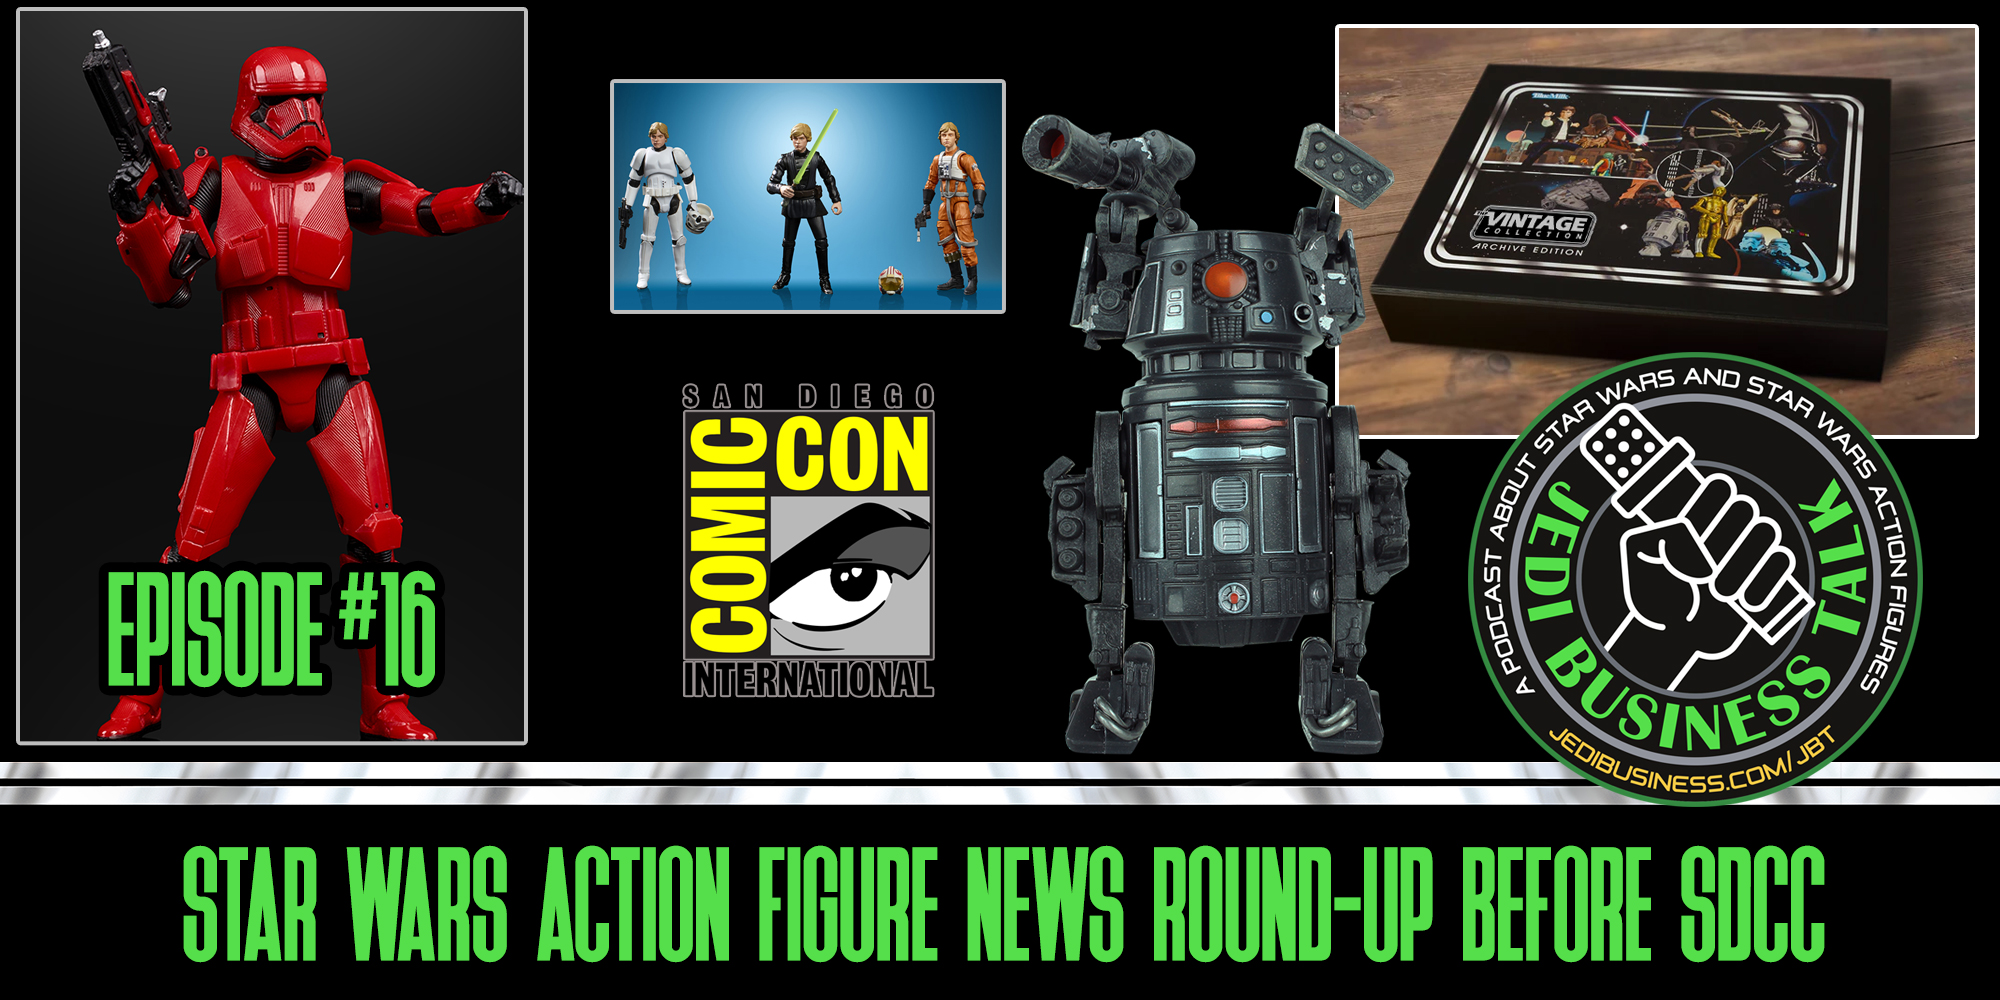 JBT Jedi Business Talk - Star Wars Action Figure News Round-Up Before SDCC